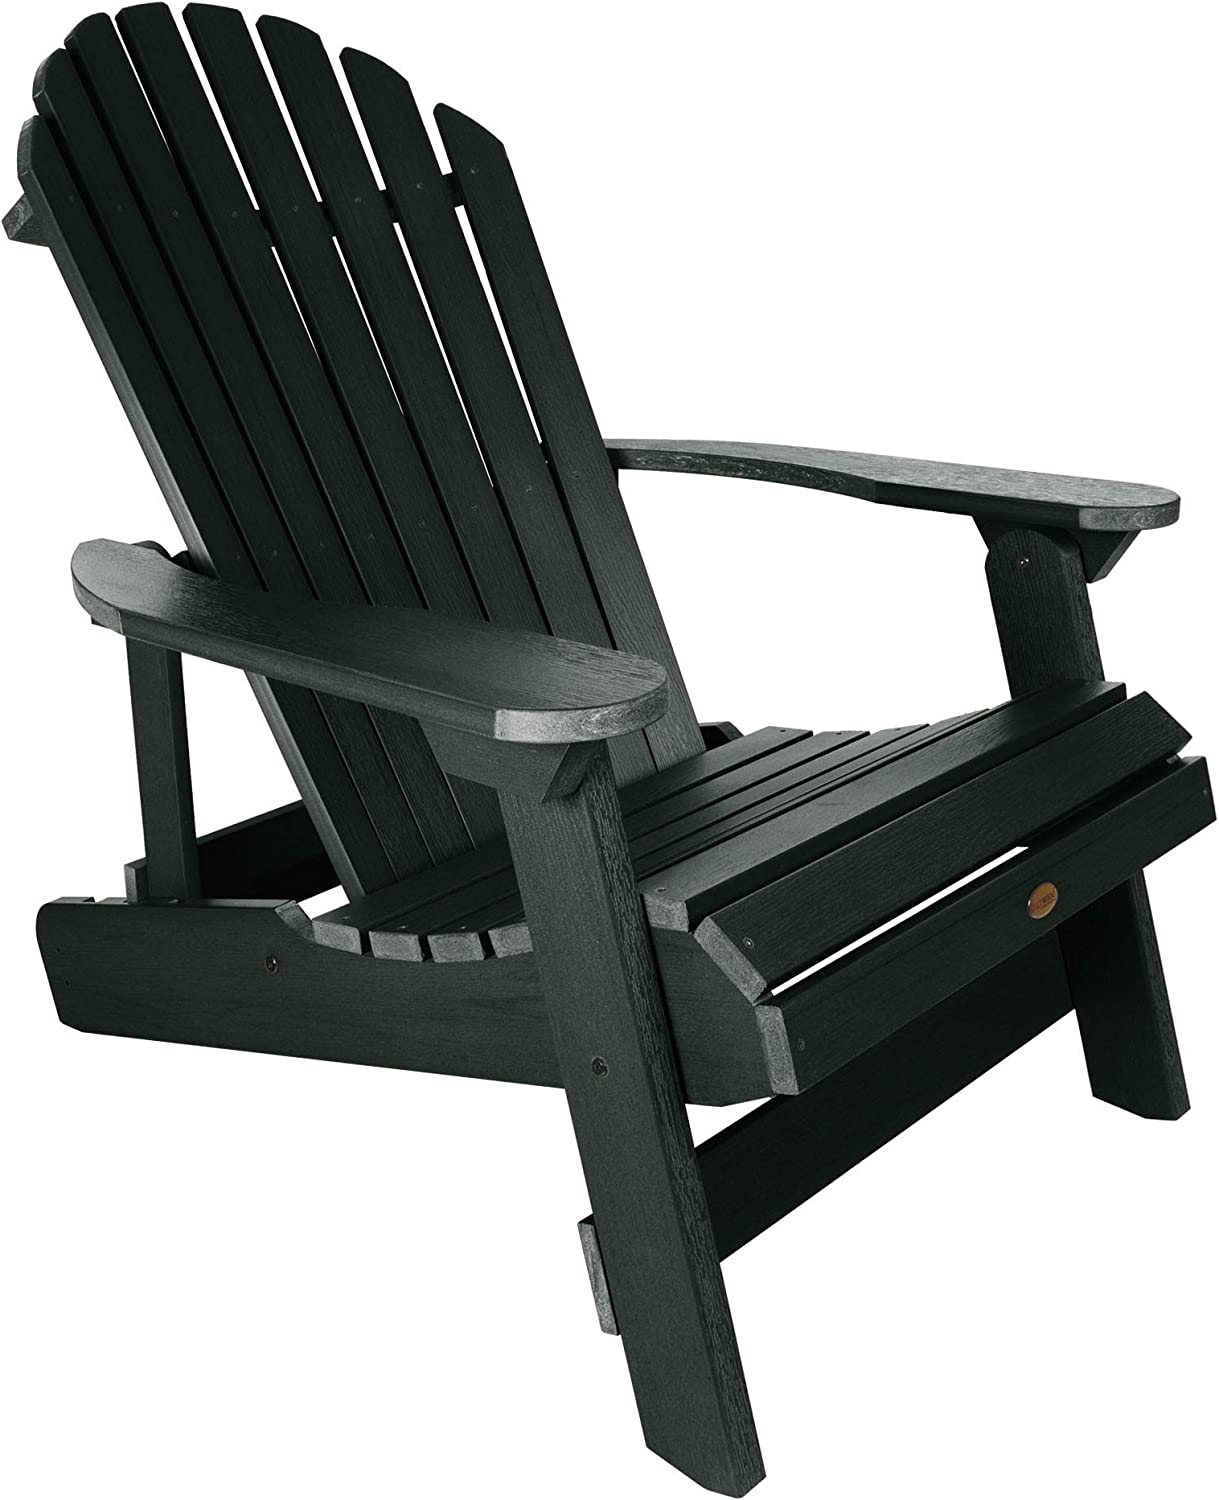 Highwood Hamilton Pieghevole e reclinabile Sedia Adirondack, King Size, Bianco, Charleston Green, King